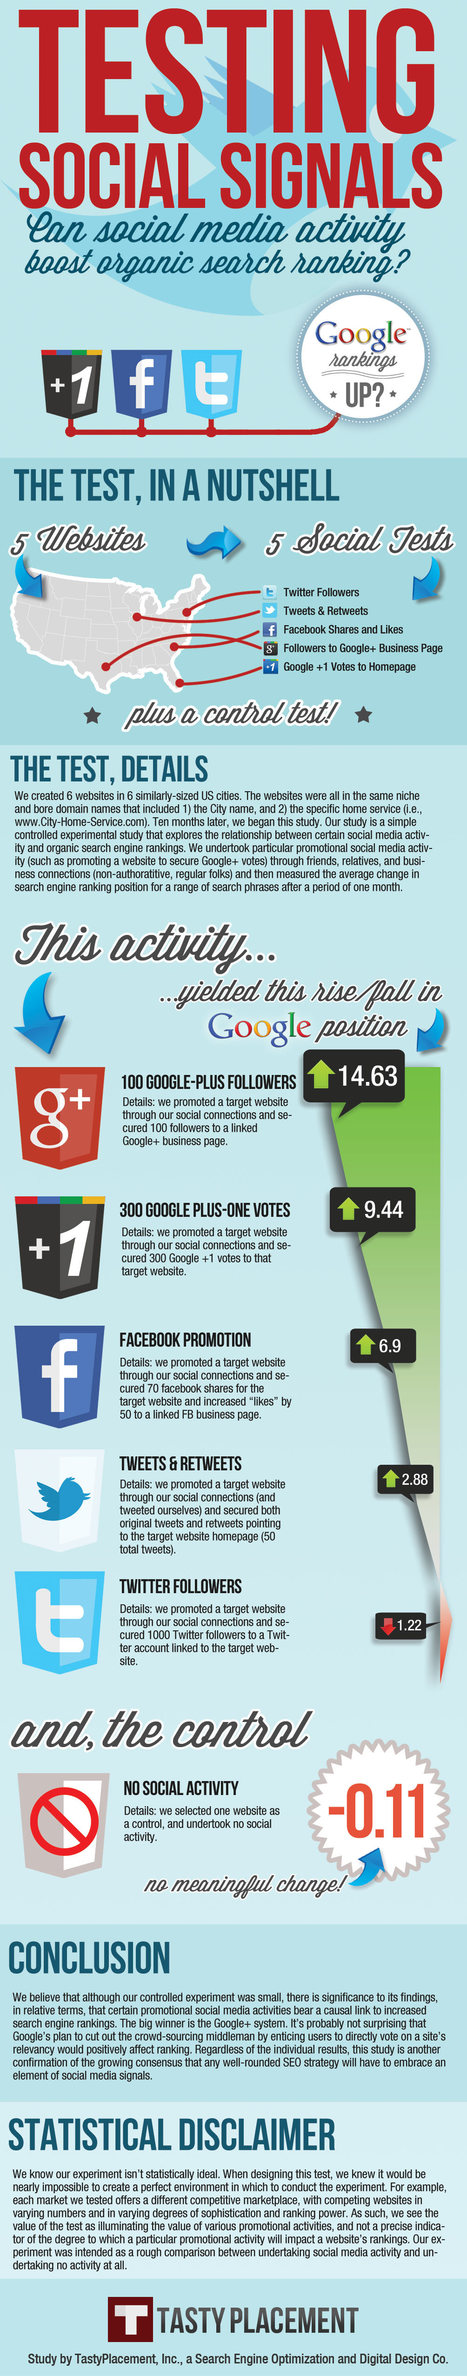 How Does Social Media Affect Website Search Rankings? [INFOGRAPHIC] - AllTwitter | Social-Network-Stories | Scoop.it